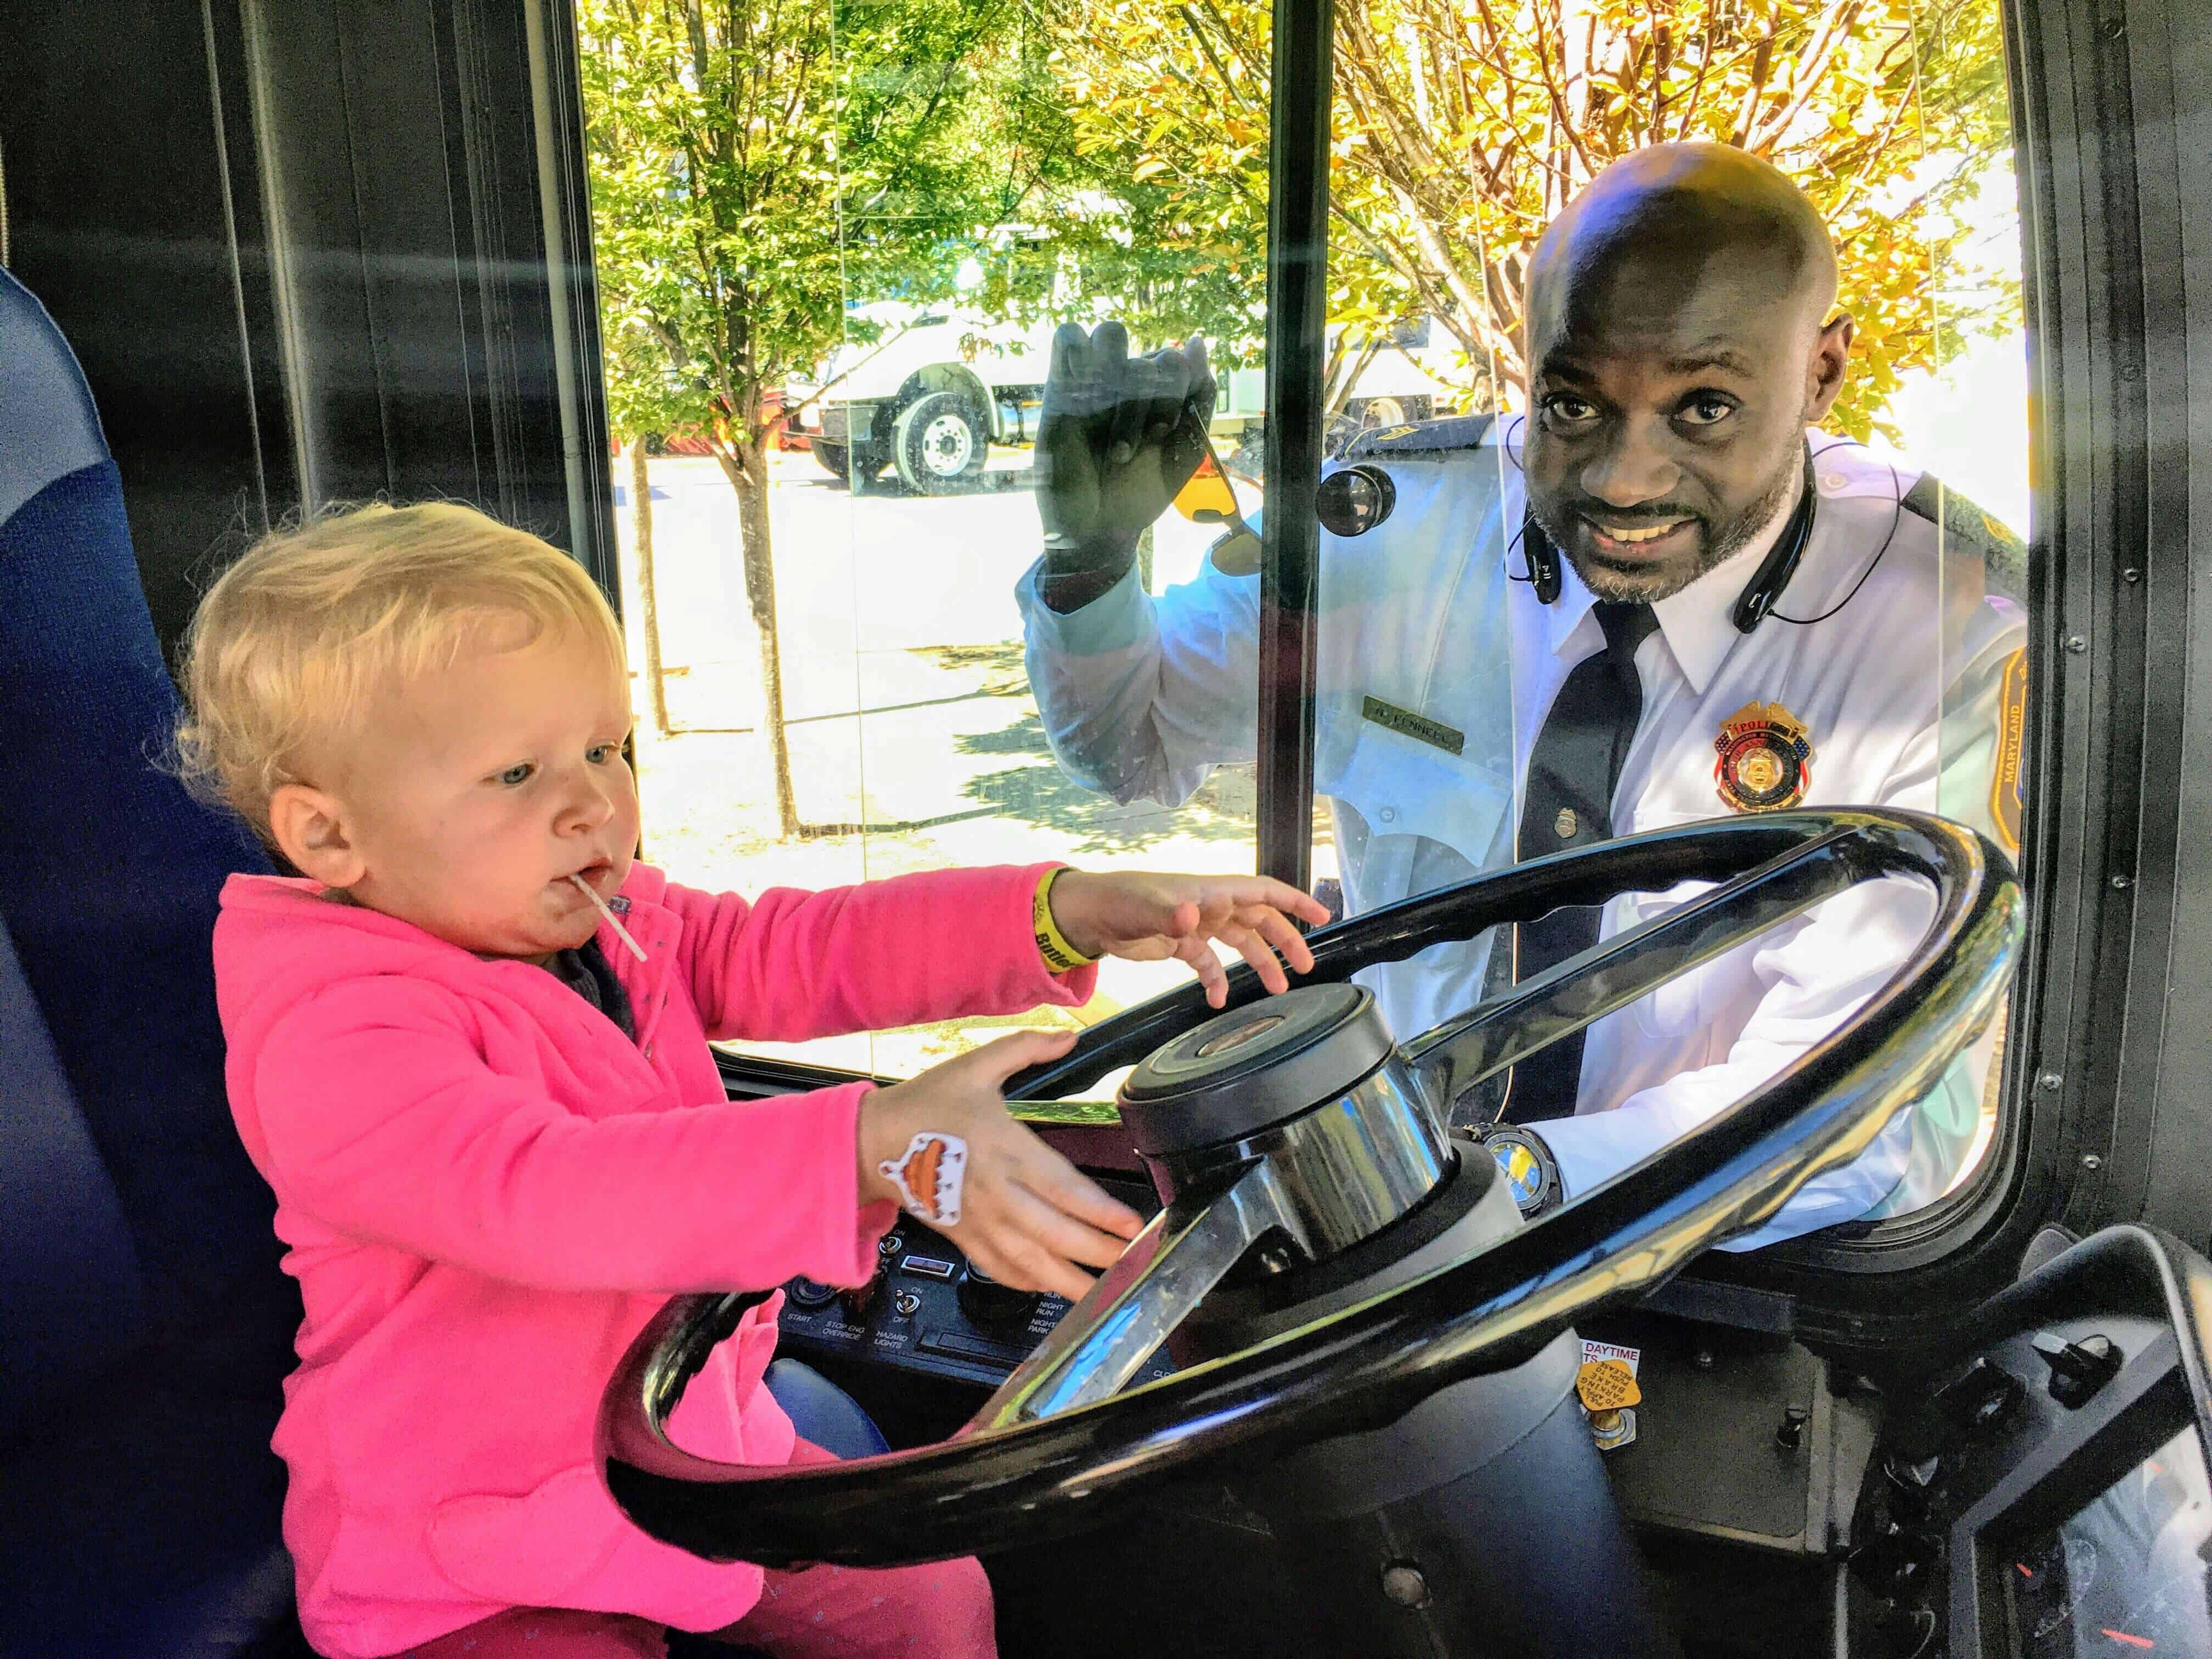 Always one of our fave events - CASA PG's Touch-a-Truck is this weekend!